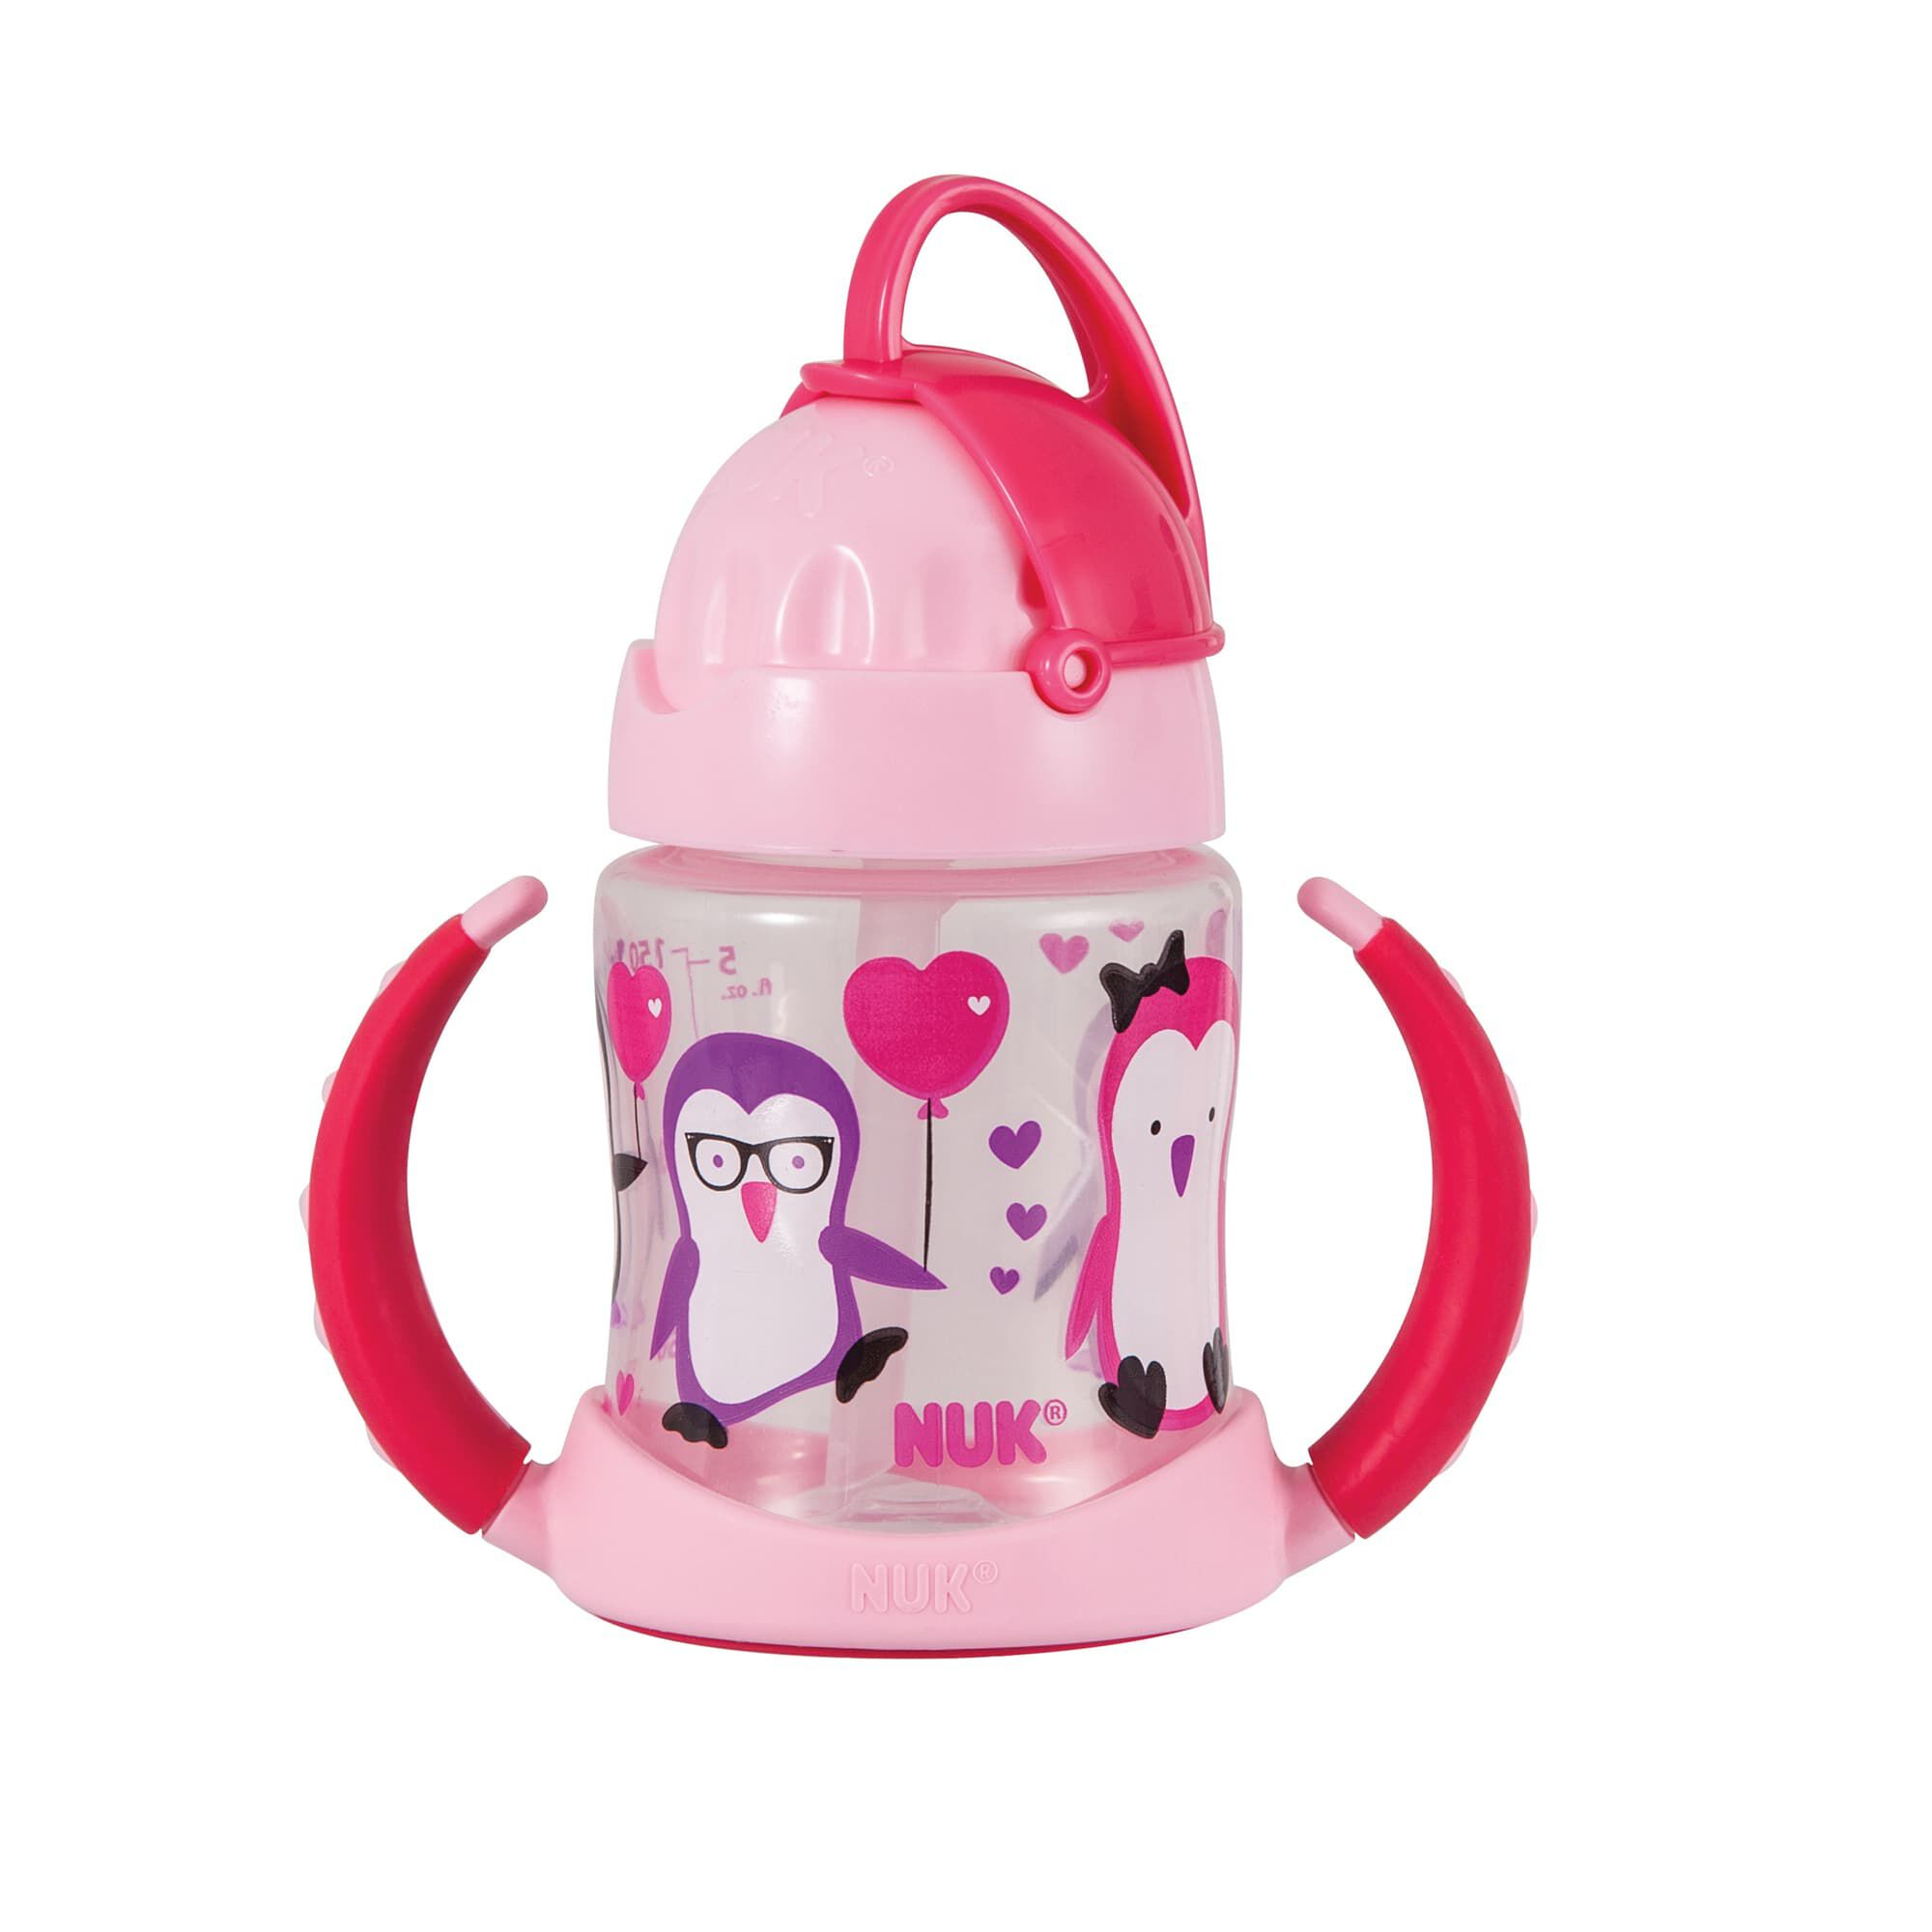 Nuk 174 Straw Learner Cup 5 Ounce 1 Pack Toddler Cups Nuk